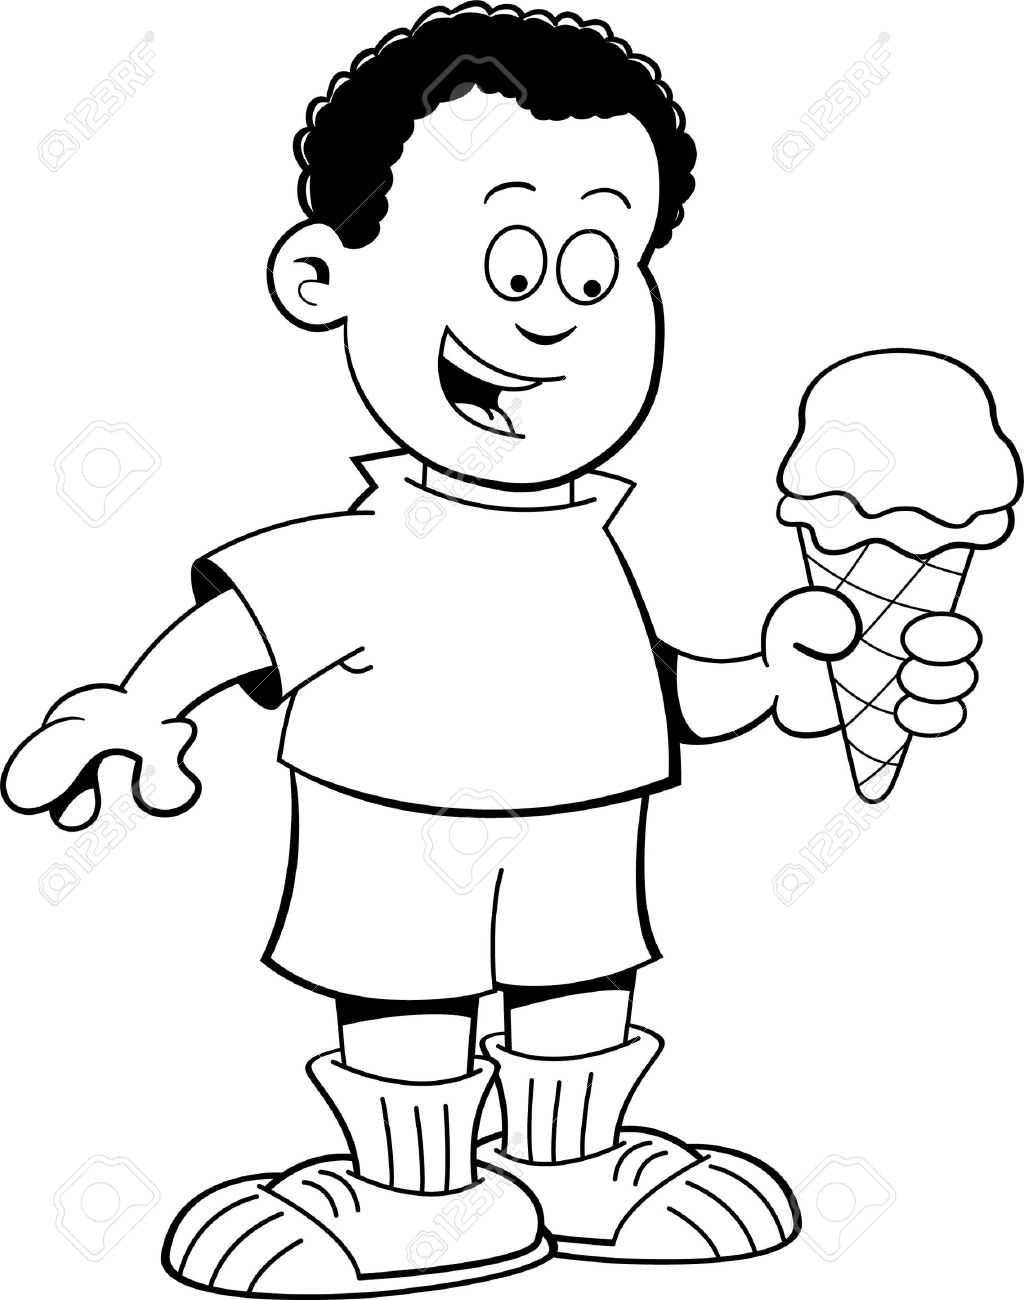 Black And White Illustration Of An African Boy Eating Ice